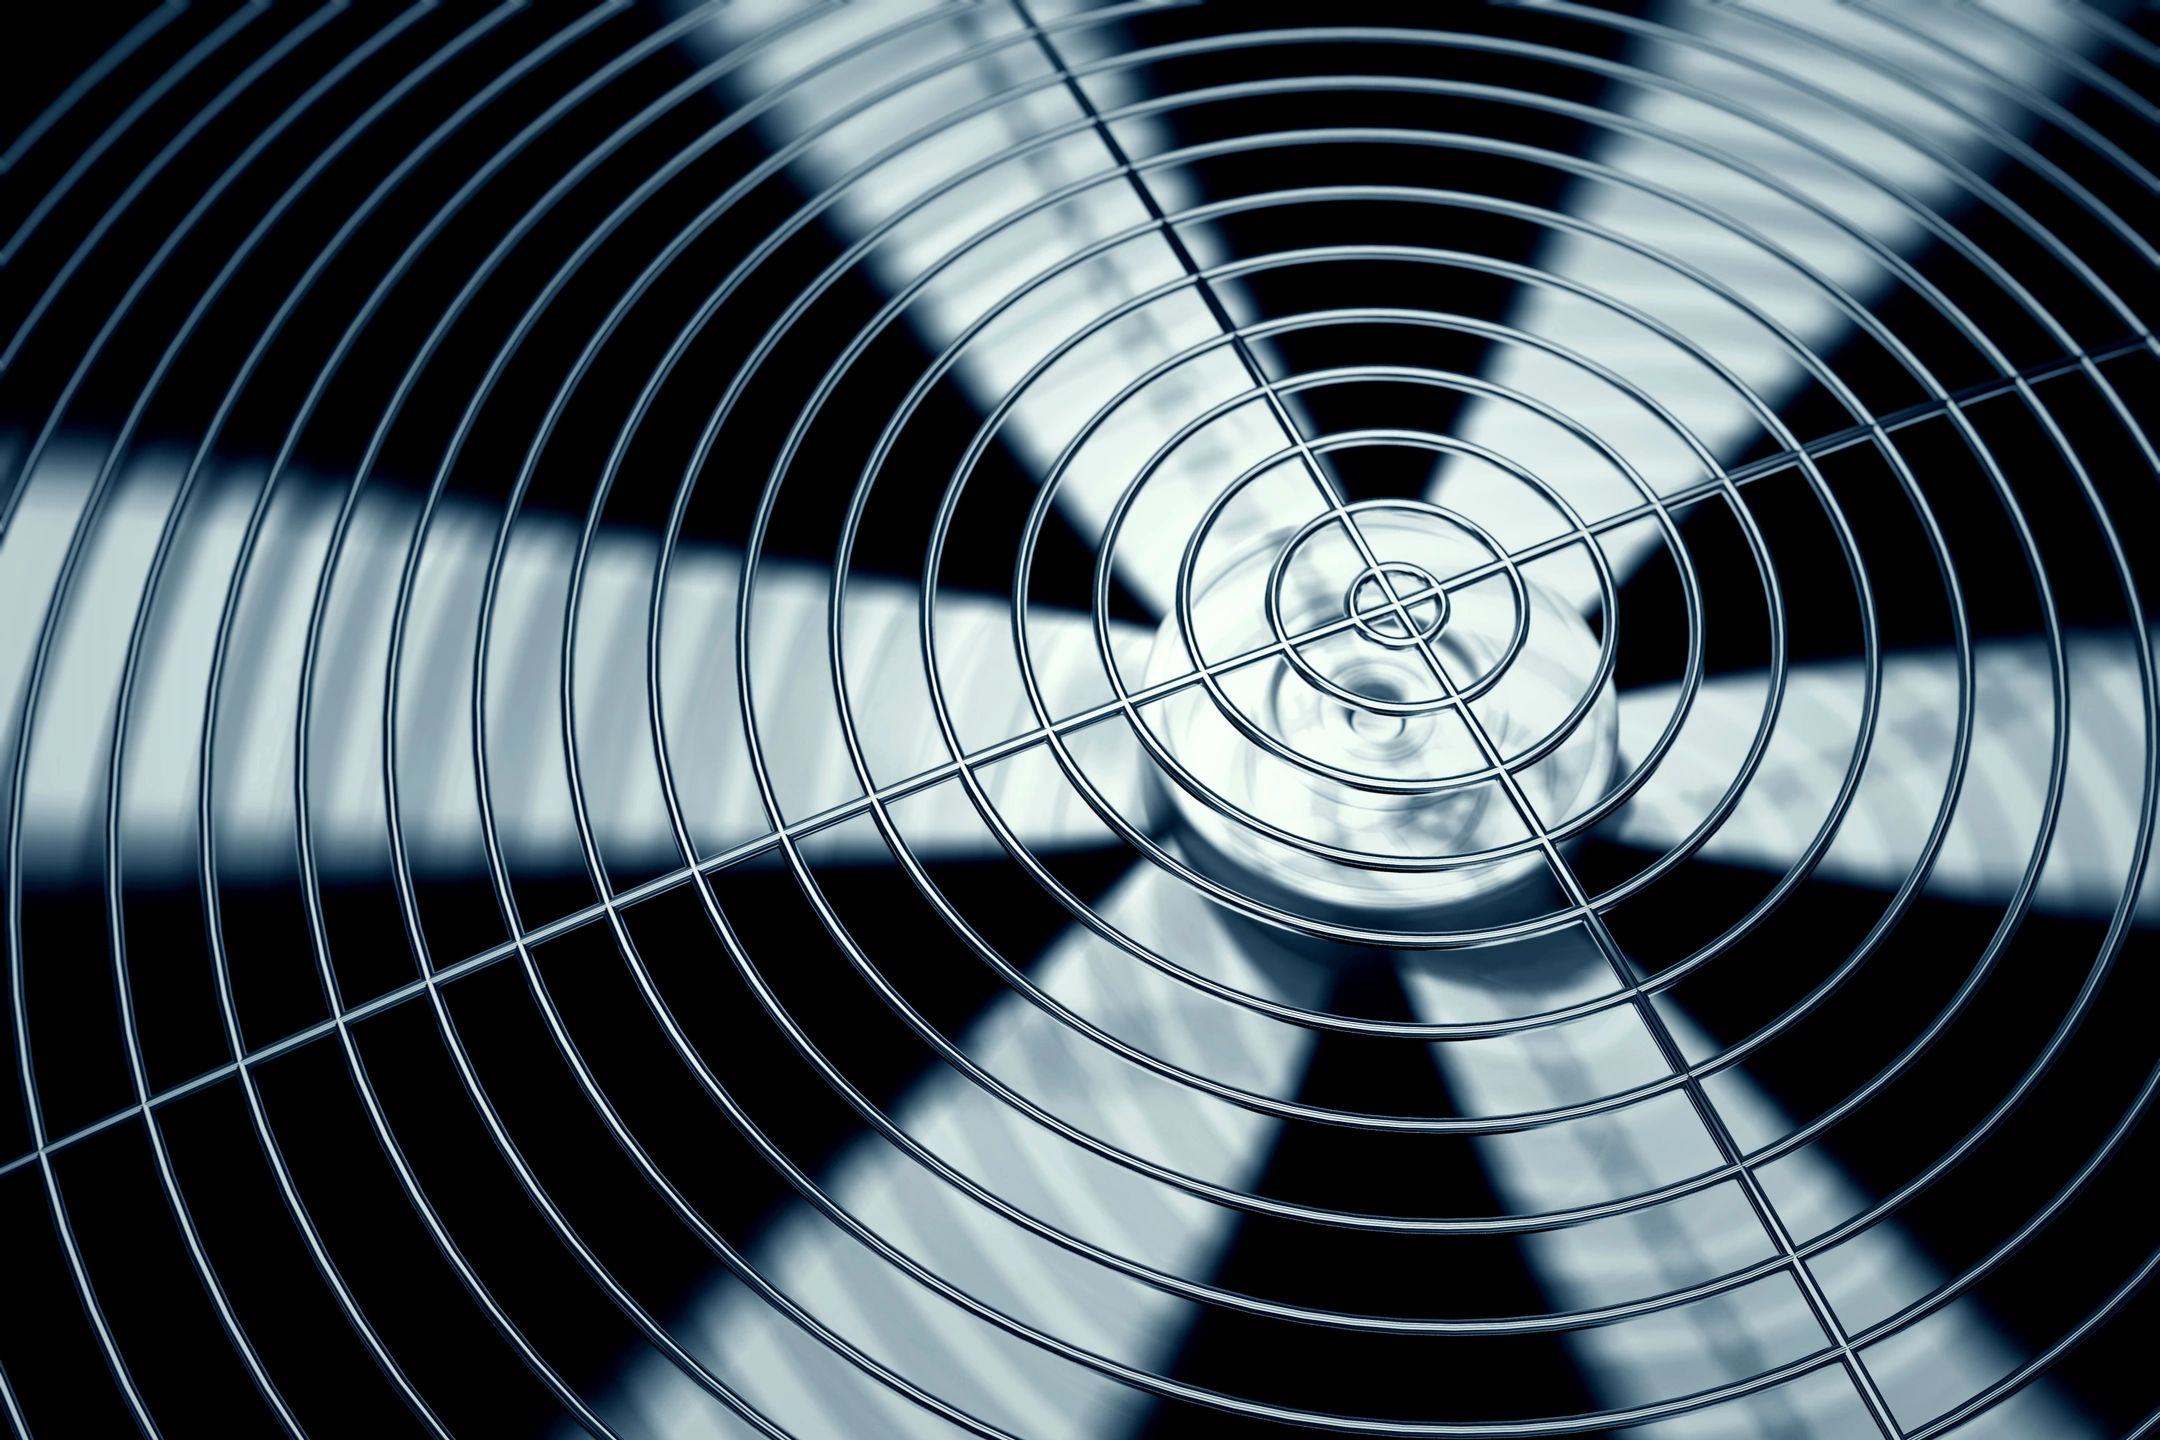 a fan that needs emergency air conditioner repair in metro east illinois, emergency AC repair